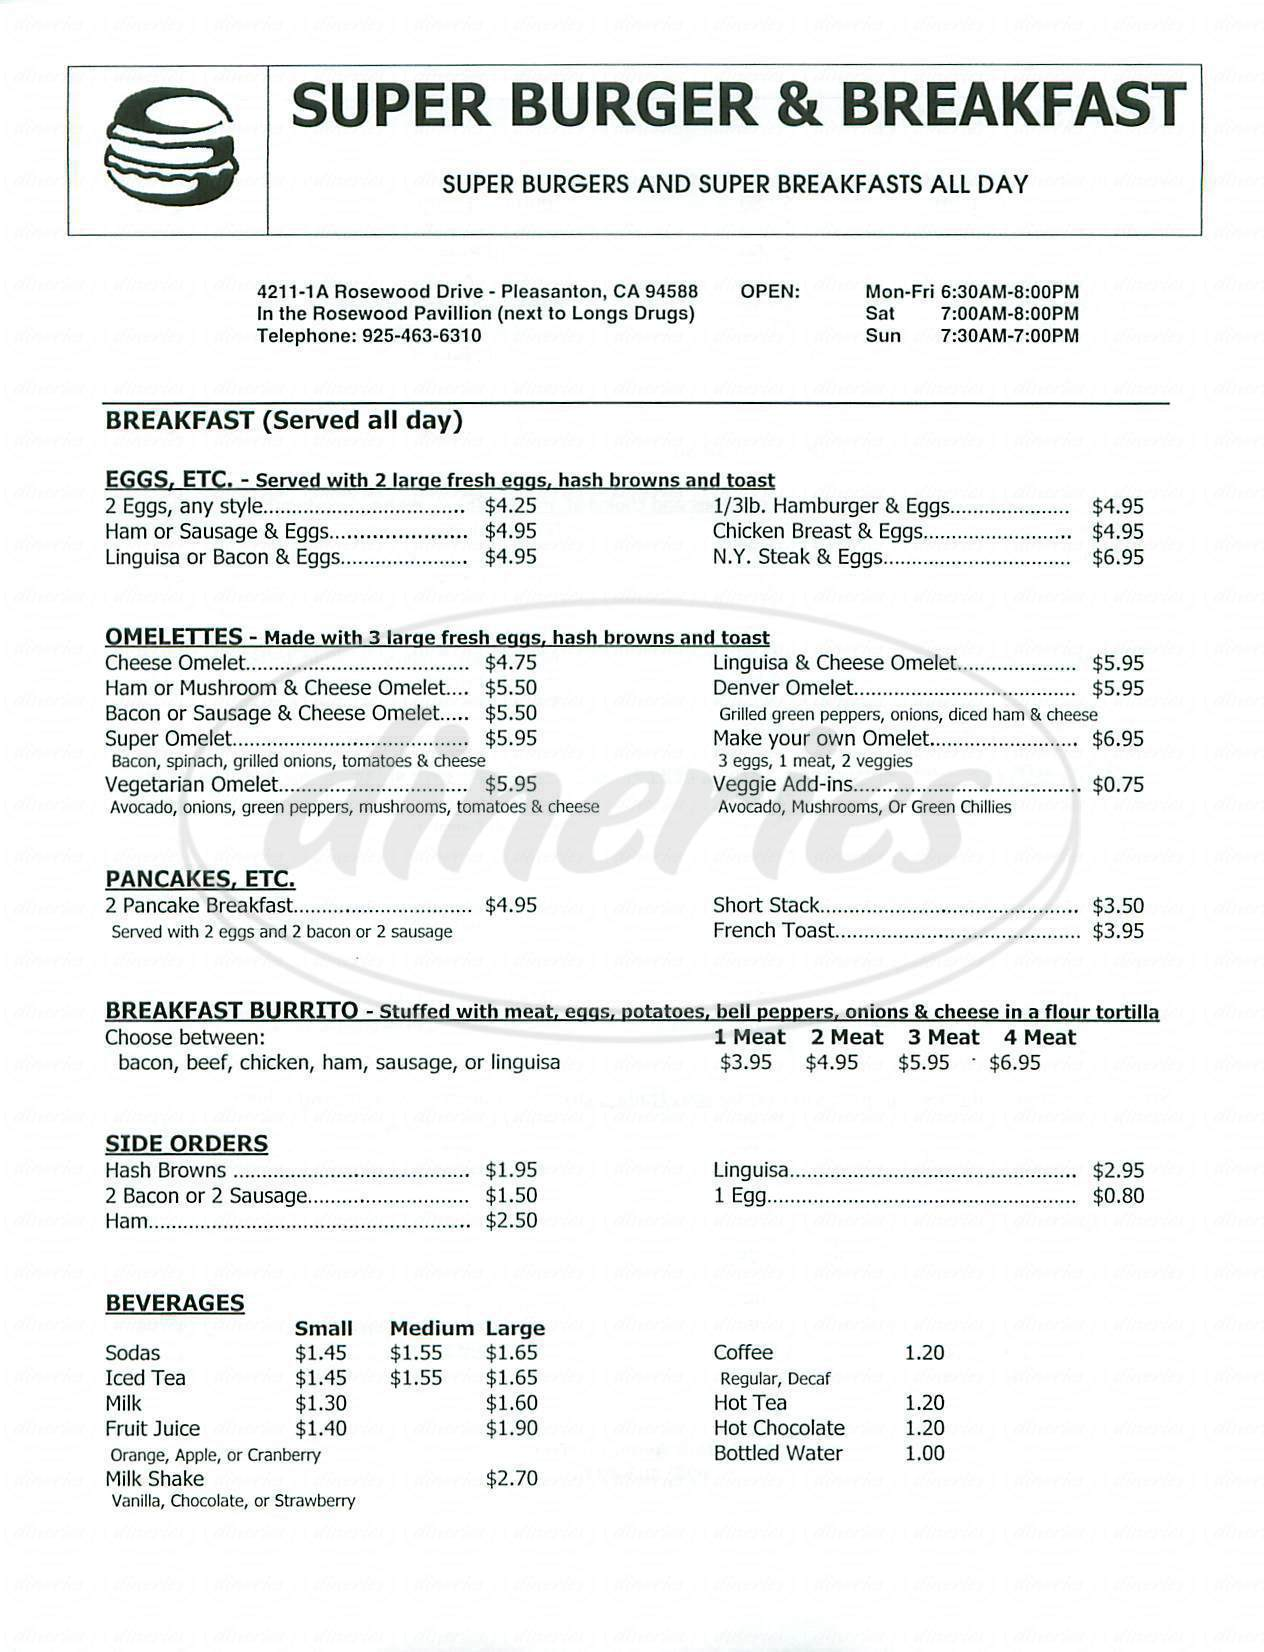 menu for Super Burger & Breakfast